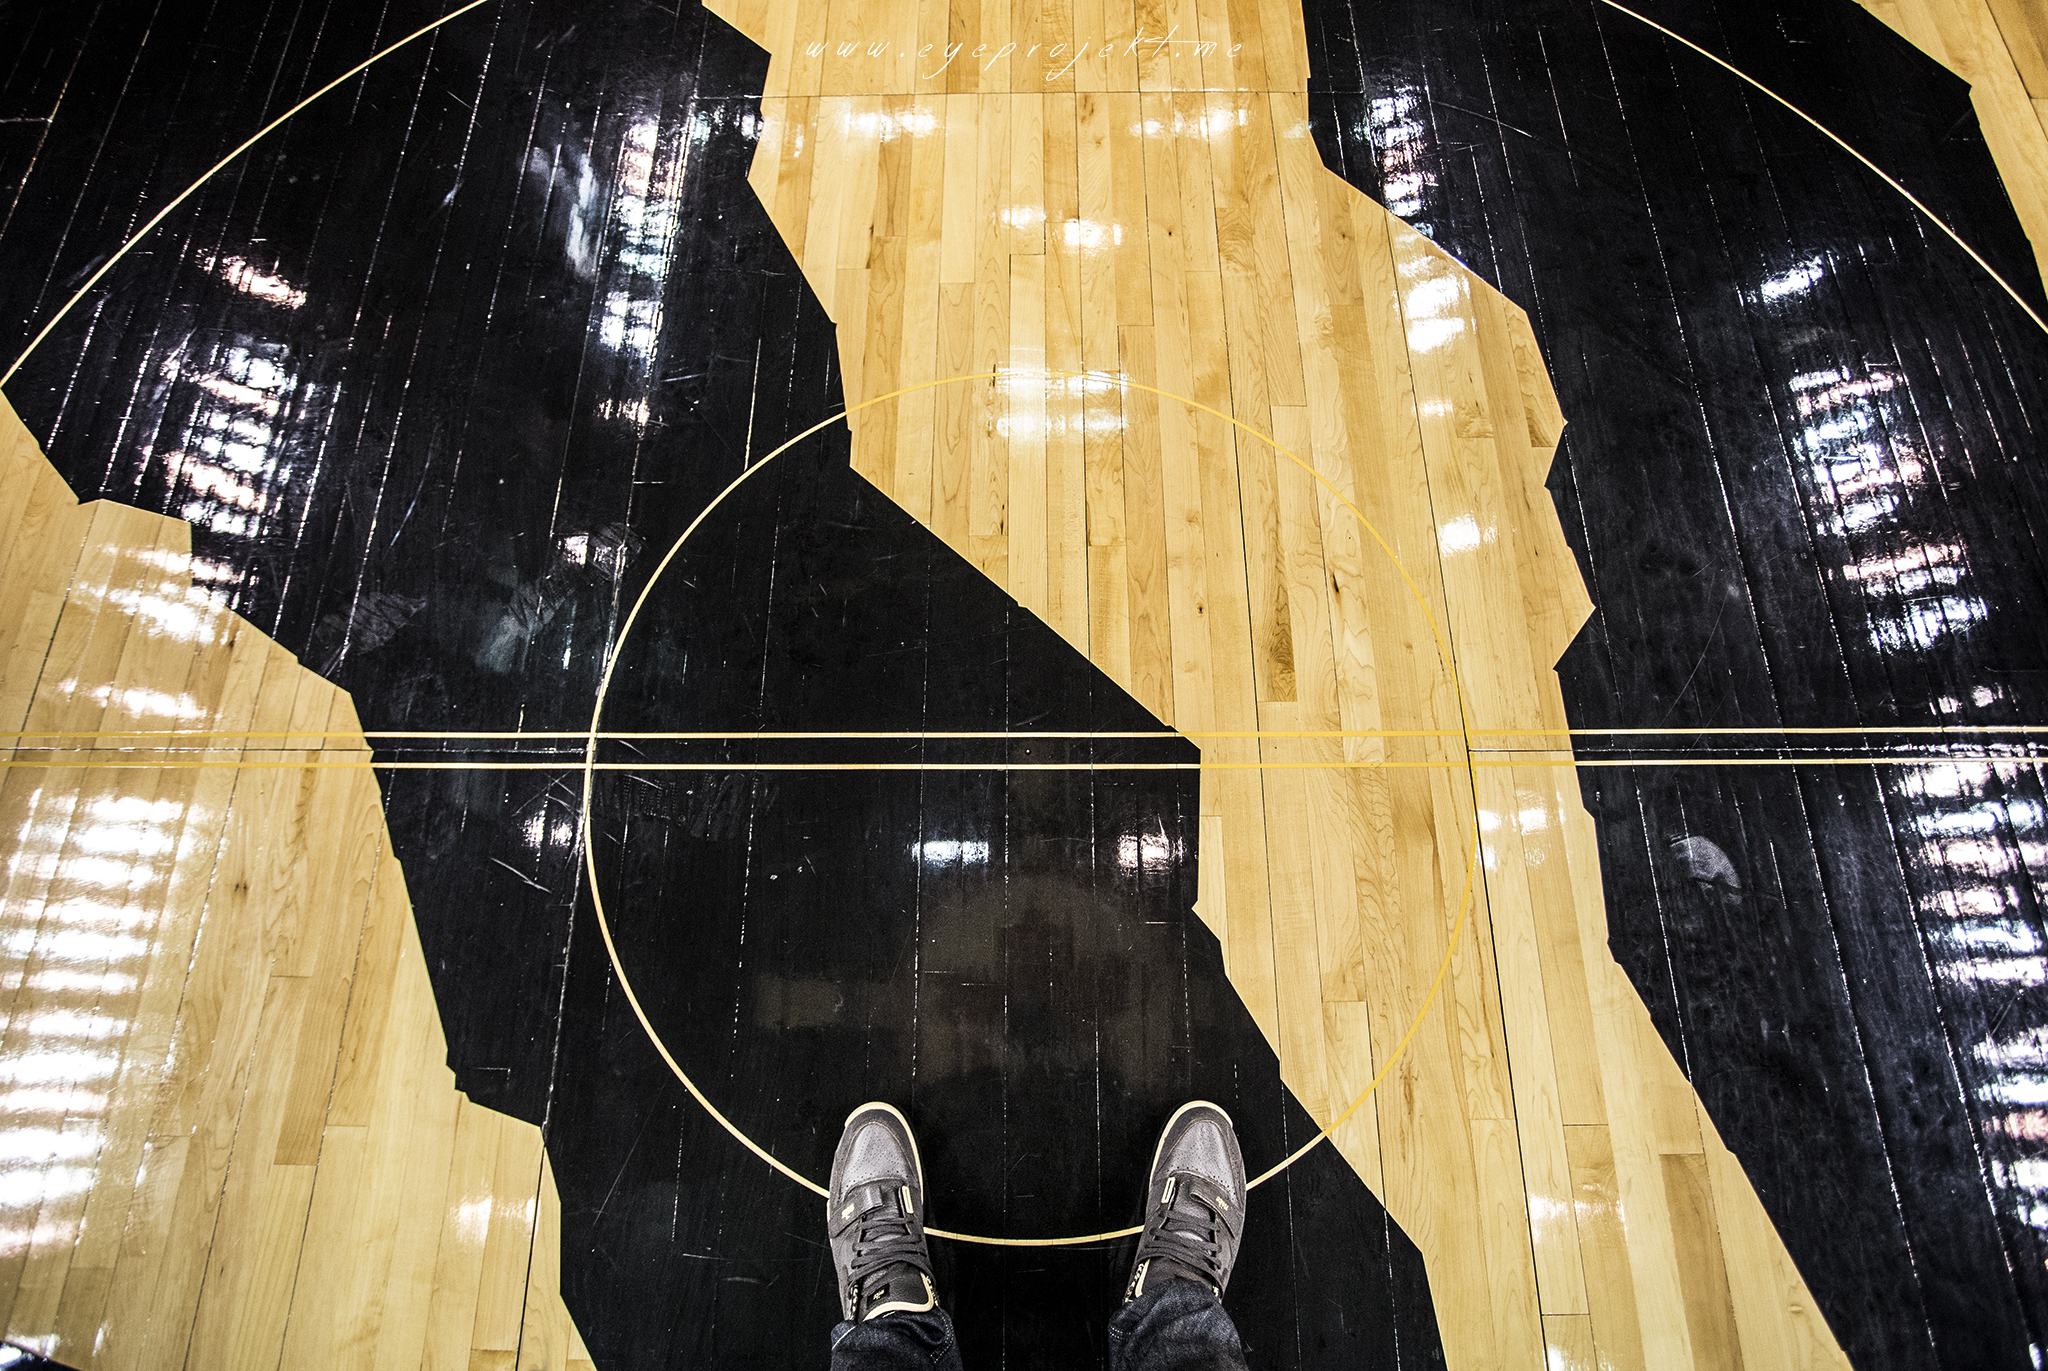 center court @ the Air Canada Centre \\ Nike Air Trainer 1 Mid PRM QS 'Brogue